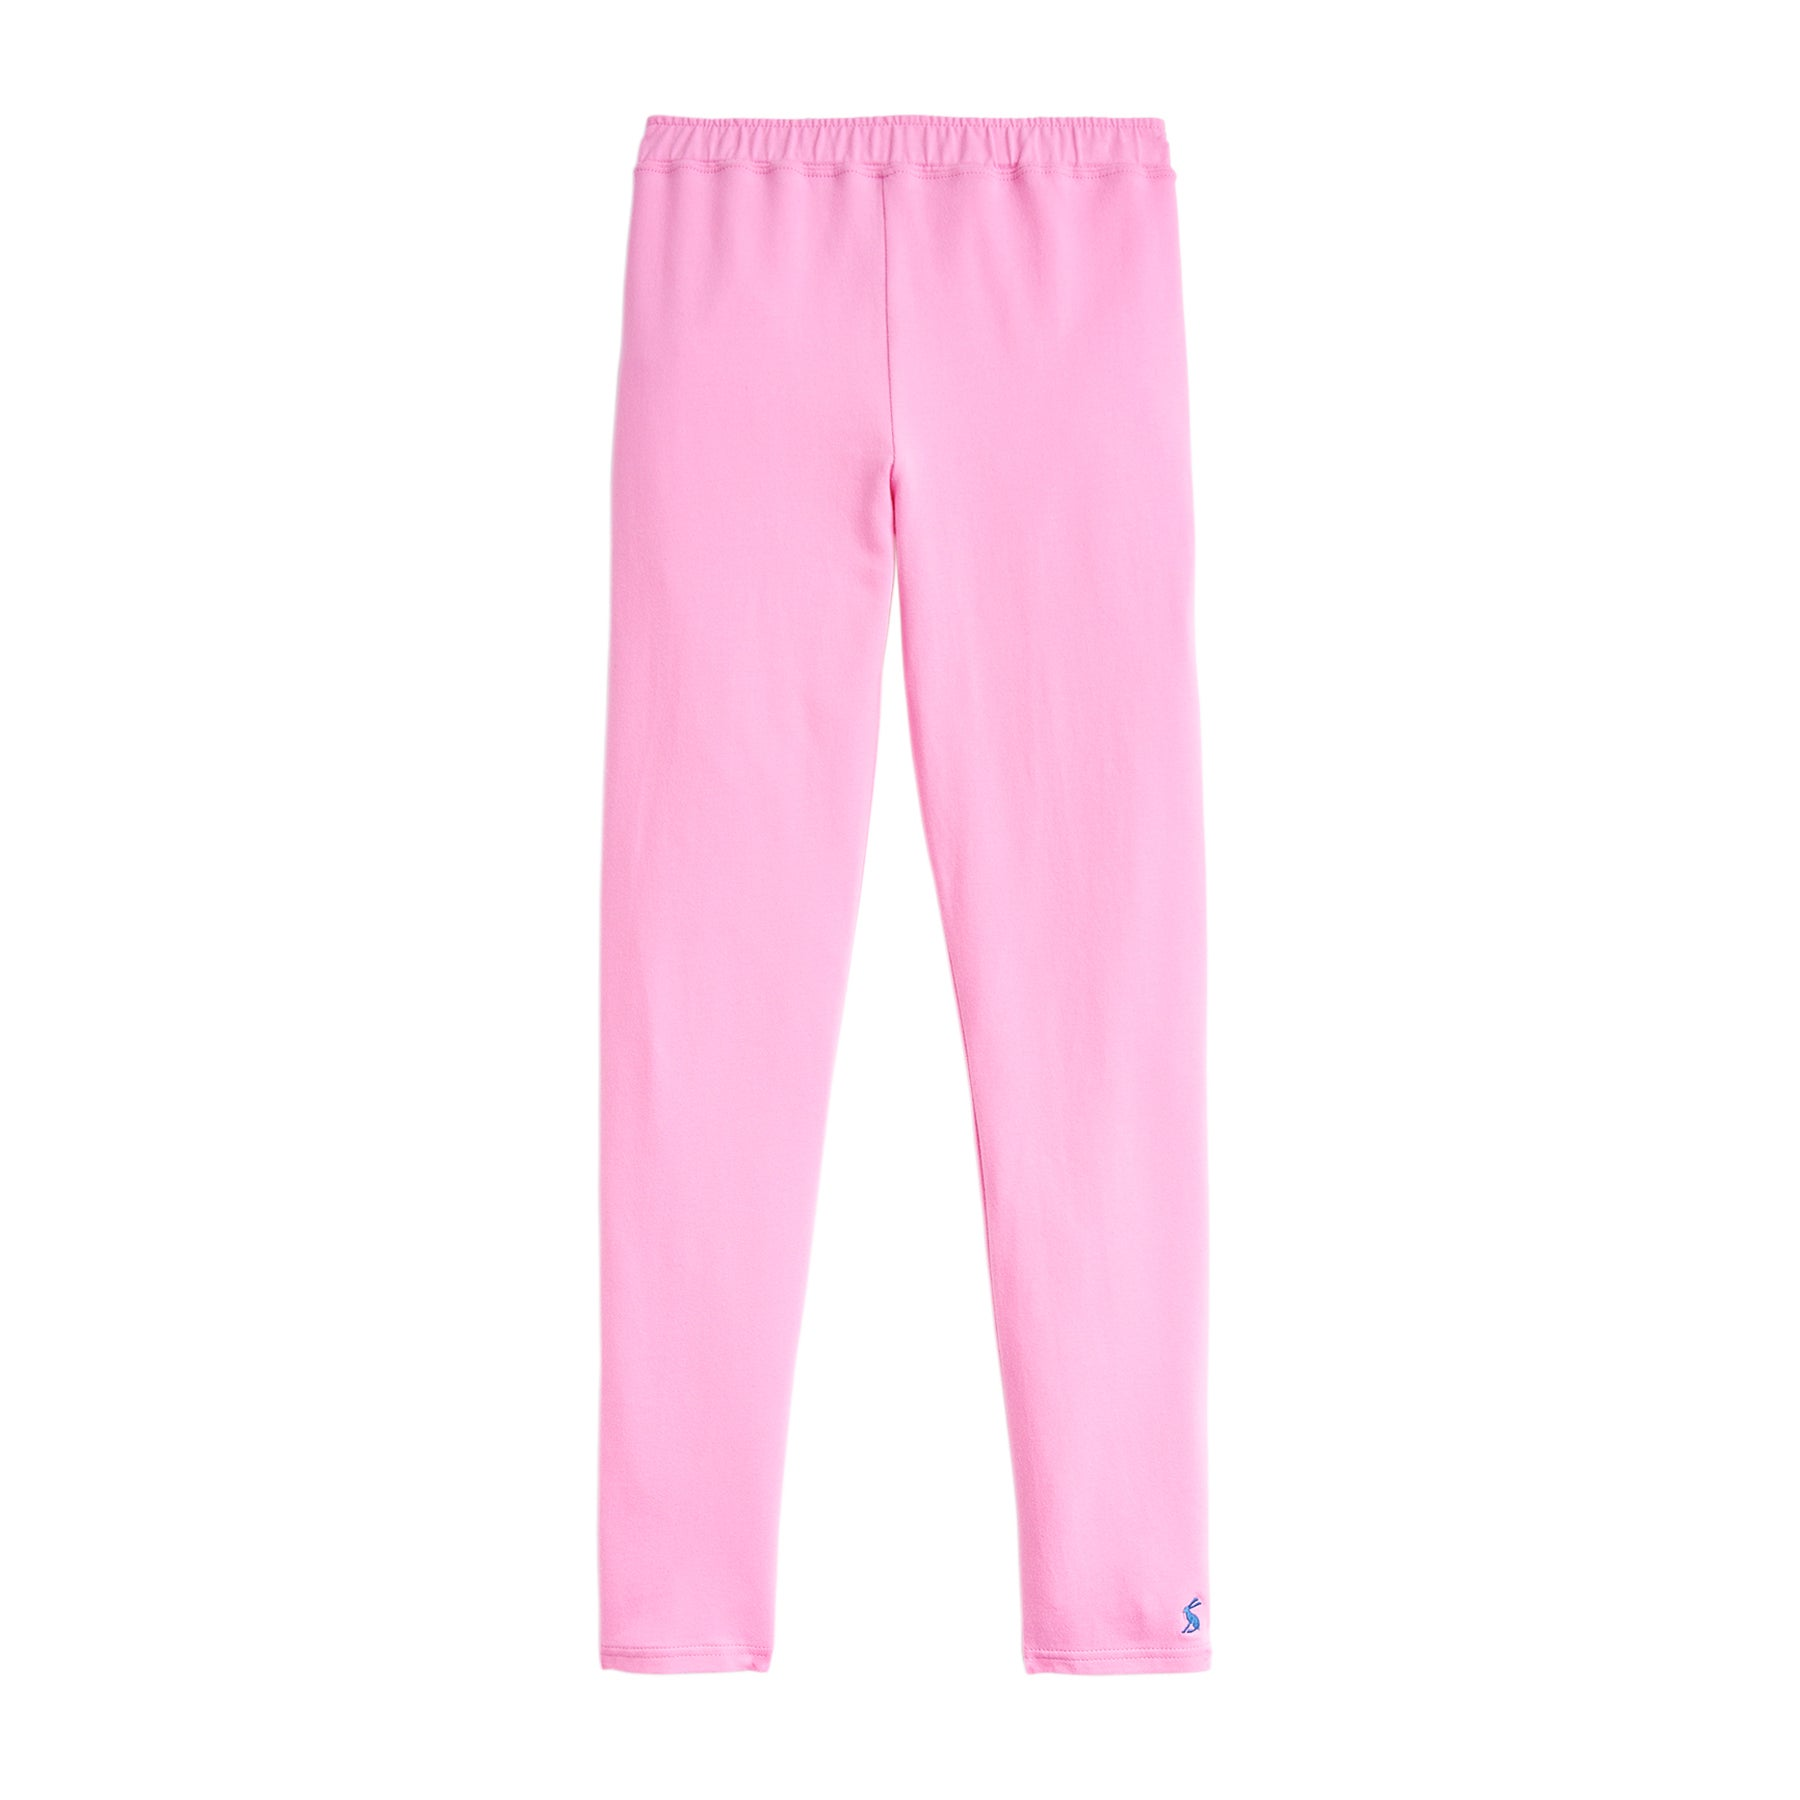 Joules Emilia Girls Leggings - Light Pink